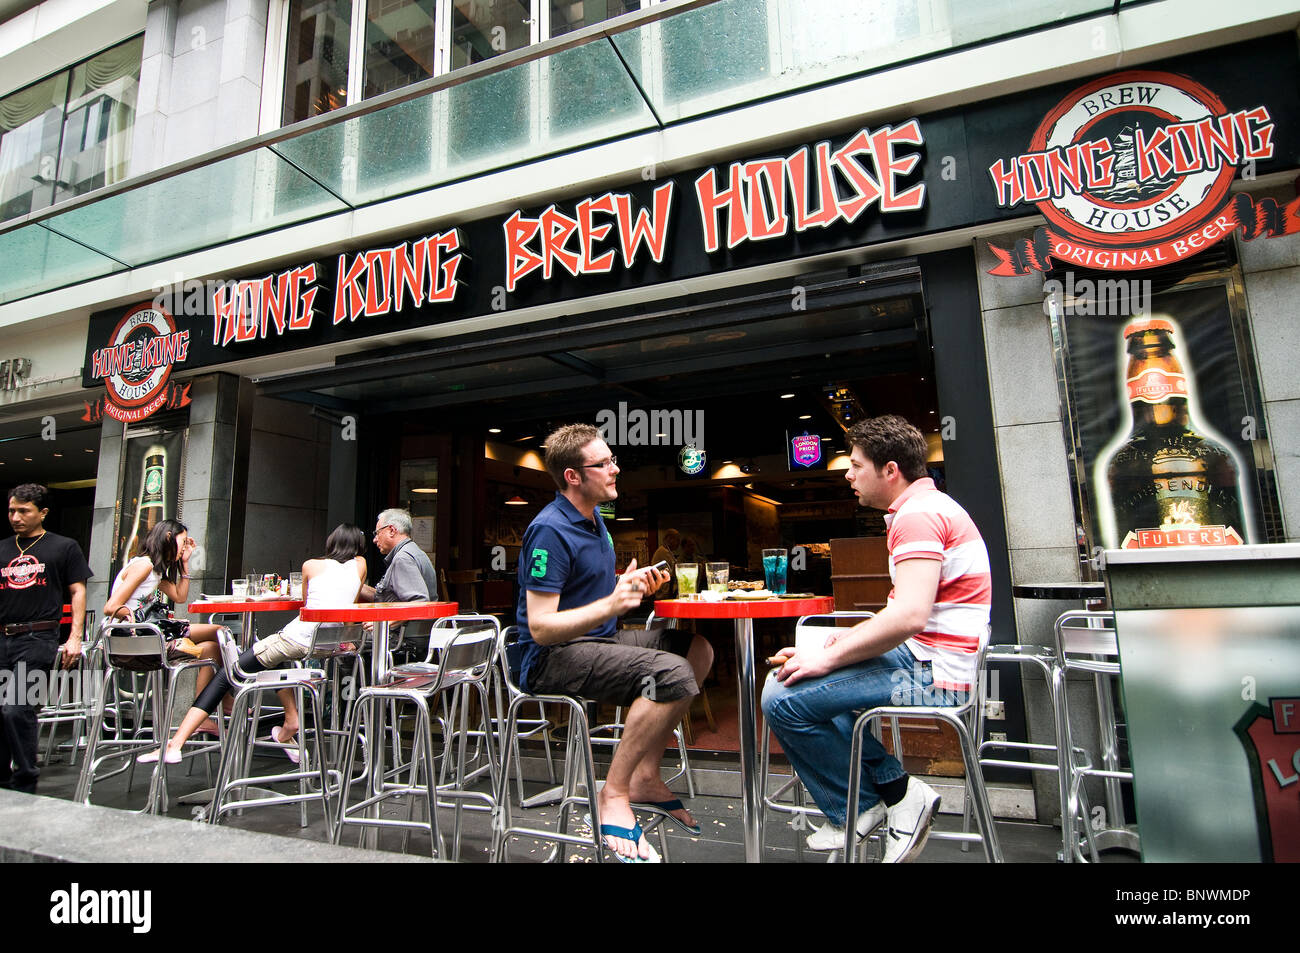 Friends enjoy a cold beer at the Hong Kong brew house located at the bustling Lan Kwai fong area in Central. - Stock Image